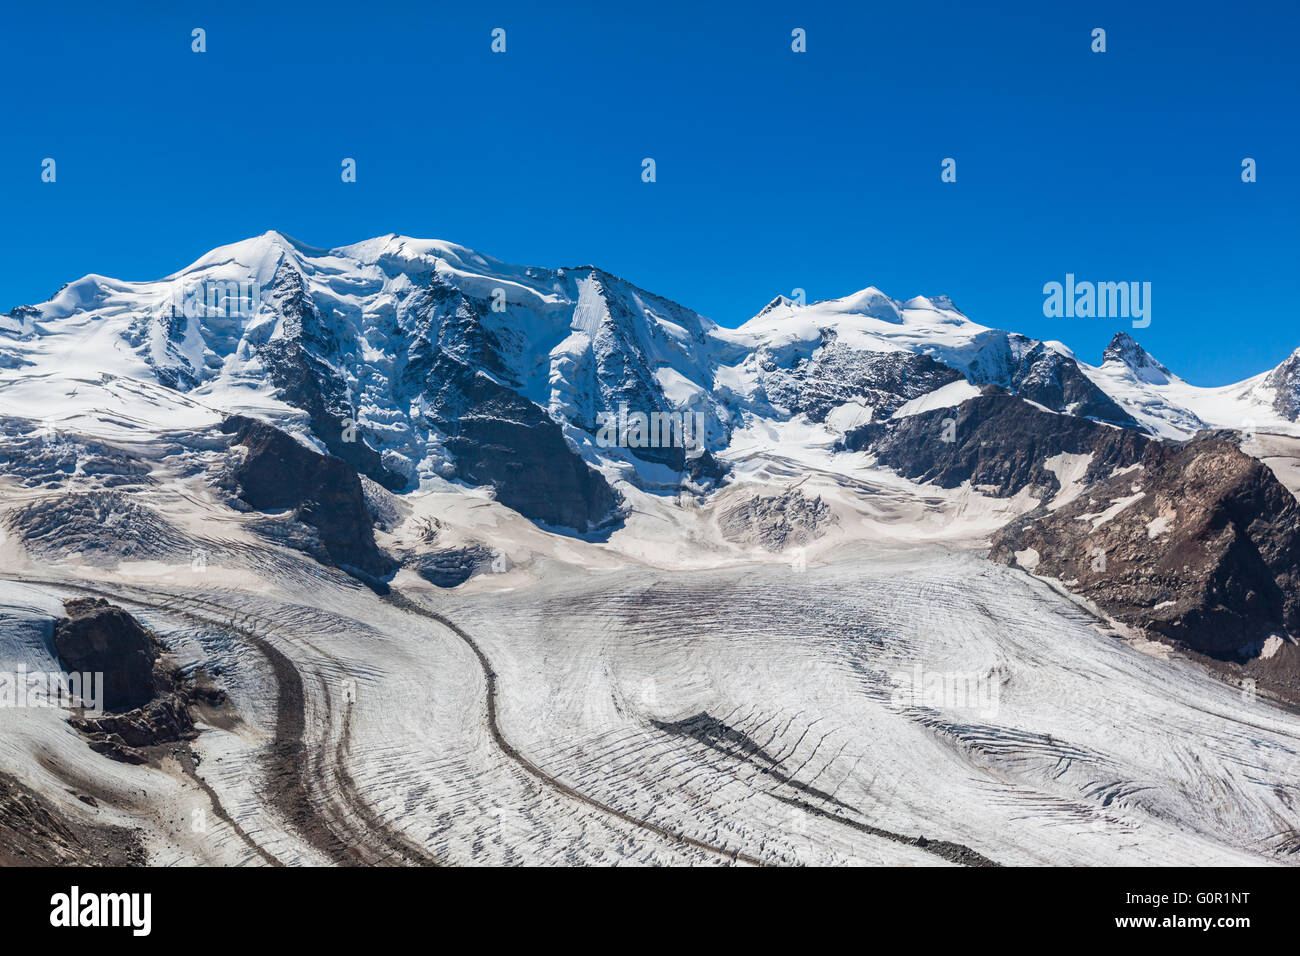 Vue imprenable sur le massif de la Bernina et le glacier Morteratsch à maison de la montagne de Diavolezza Photo Stock